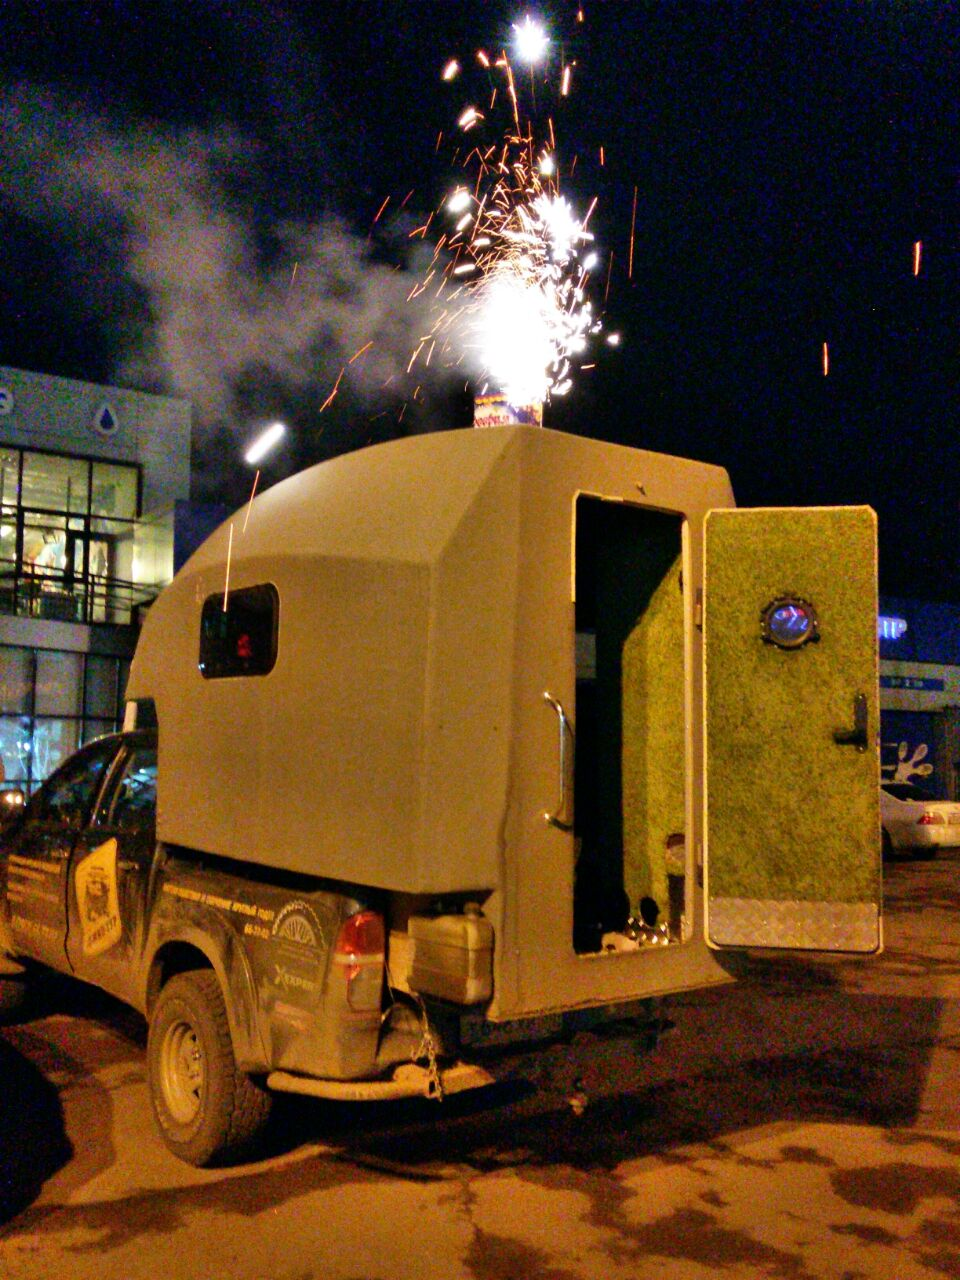 Fireworks from the support truck